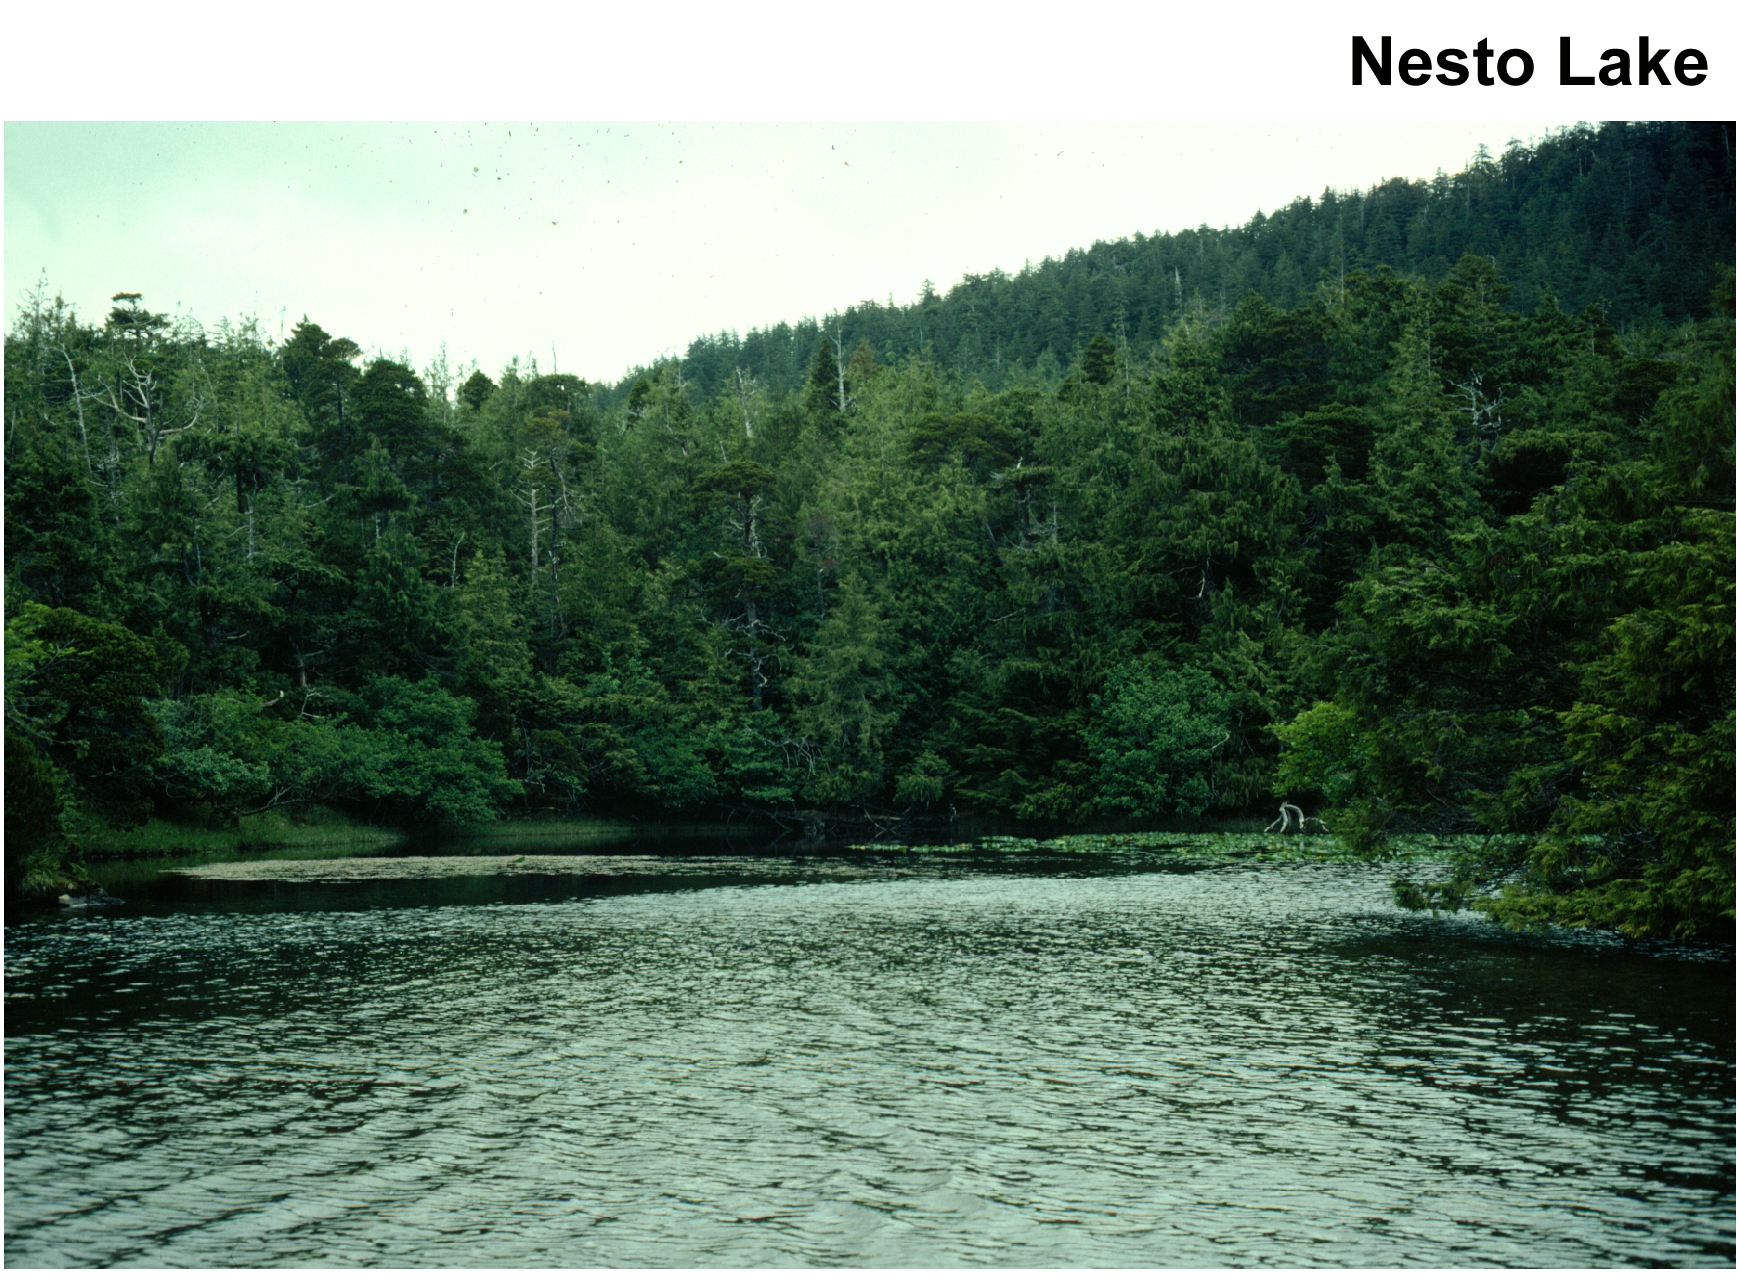 NESTO LAKE